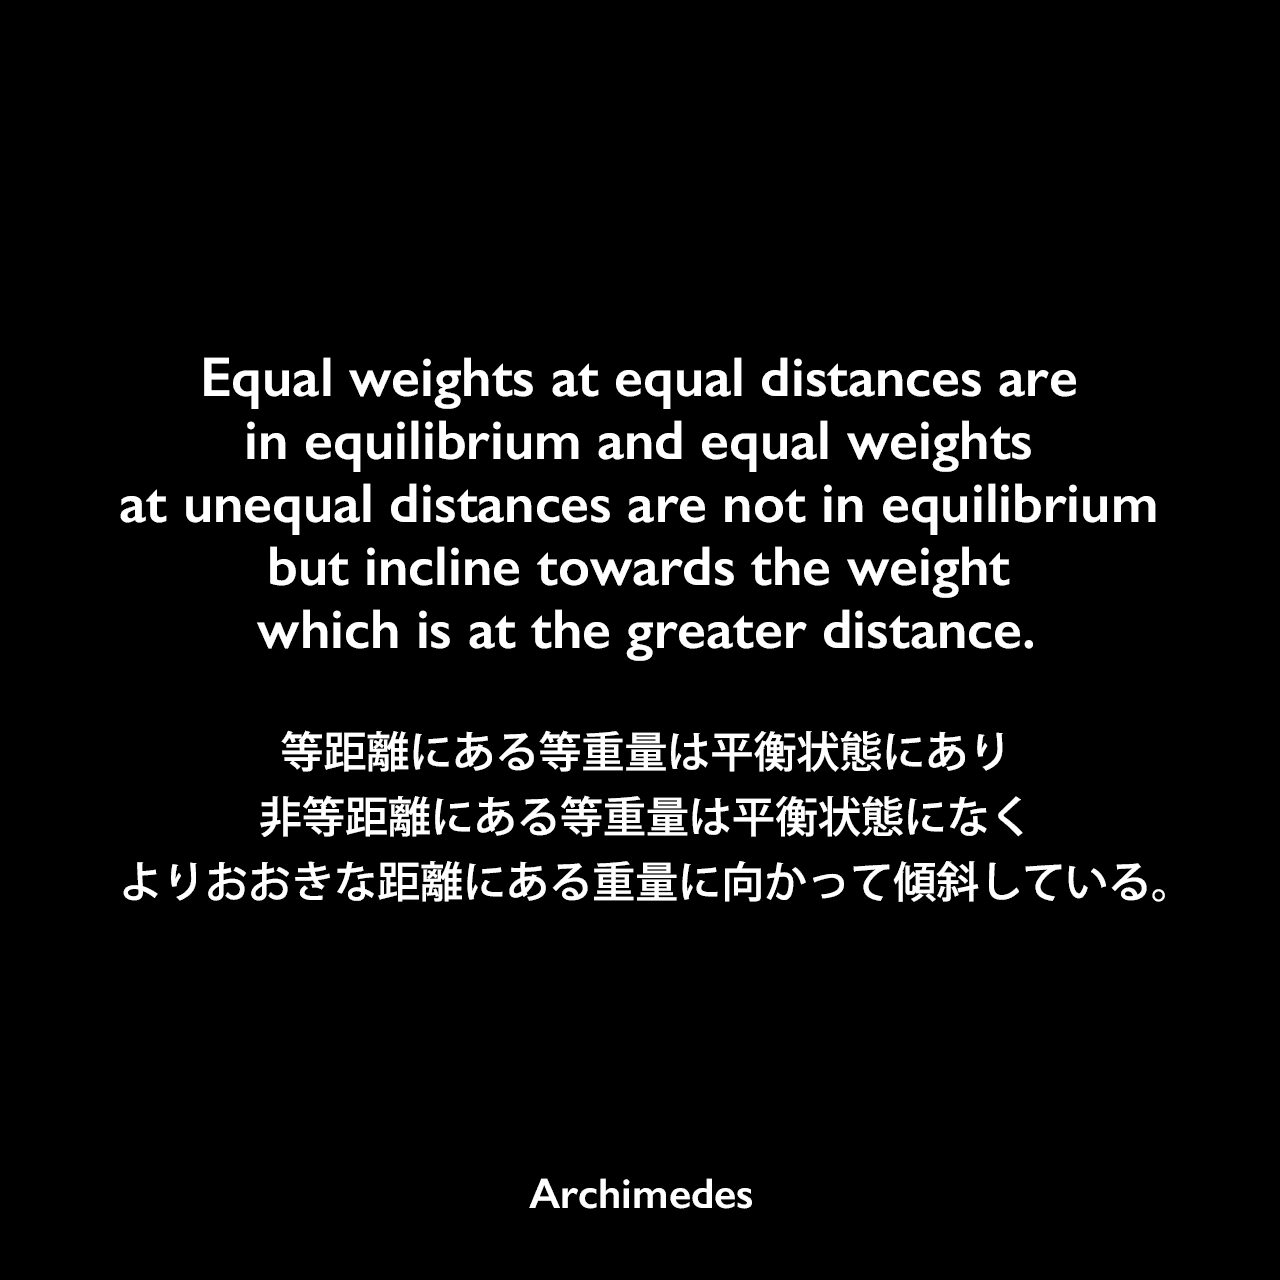 Equal weights at equal distances are in equilibrium and equal weights at unequal distances are not in equilibrium but incline towards the weight which is at the greater distance.等距離にある等重量は平衡状態にあり、非等距離にある等重量は平衡状態になく、よりおおきな距離にある重量に向かって傾斜している。- アルキメデスの論文「On the Equilibrium of Planes」よりArchimedes